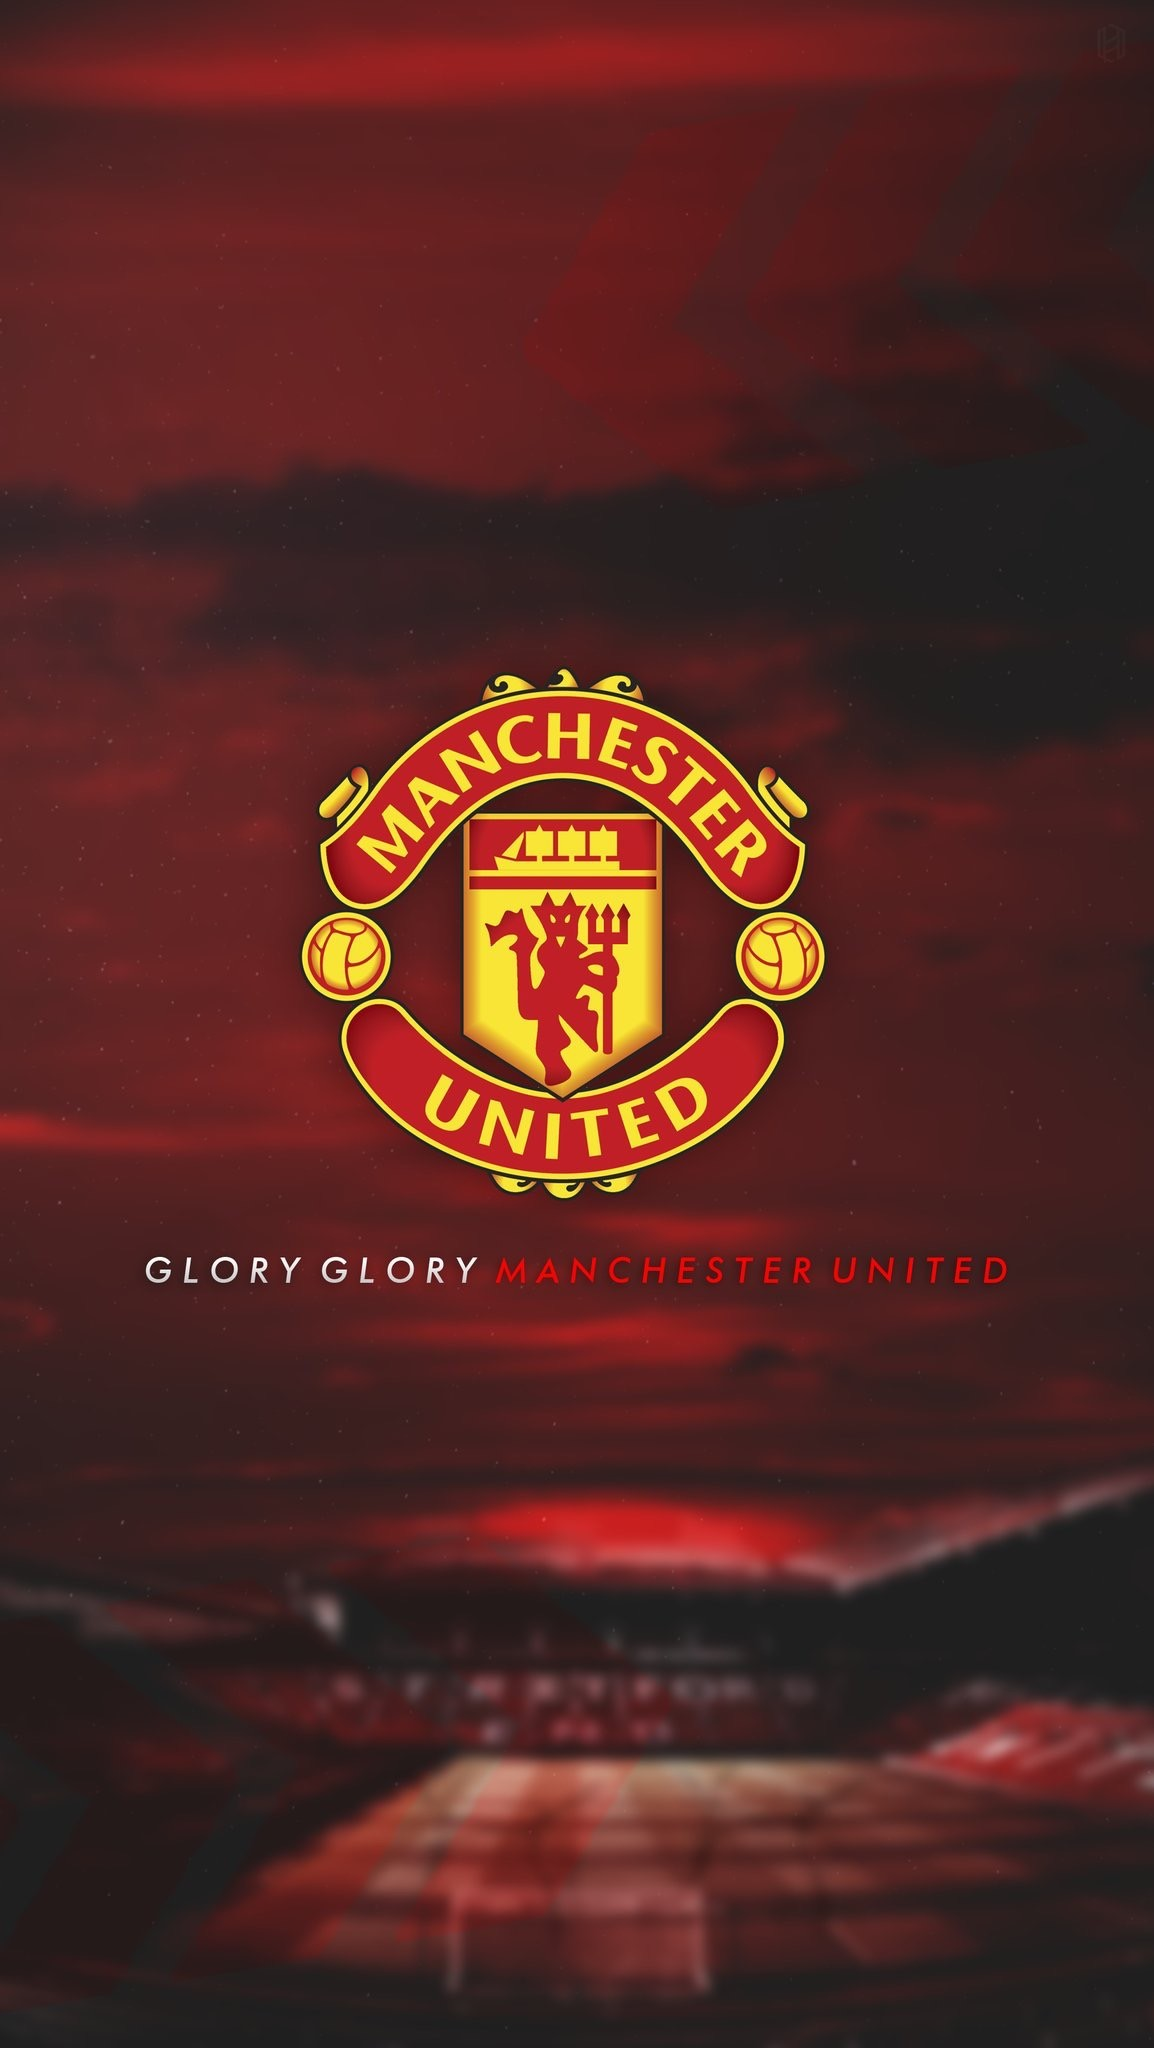 Man utd wallpaper 2018 77 images - Cool man united wallpapers ...